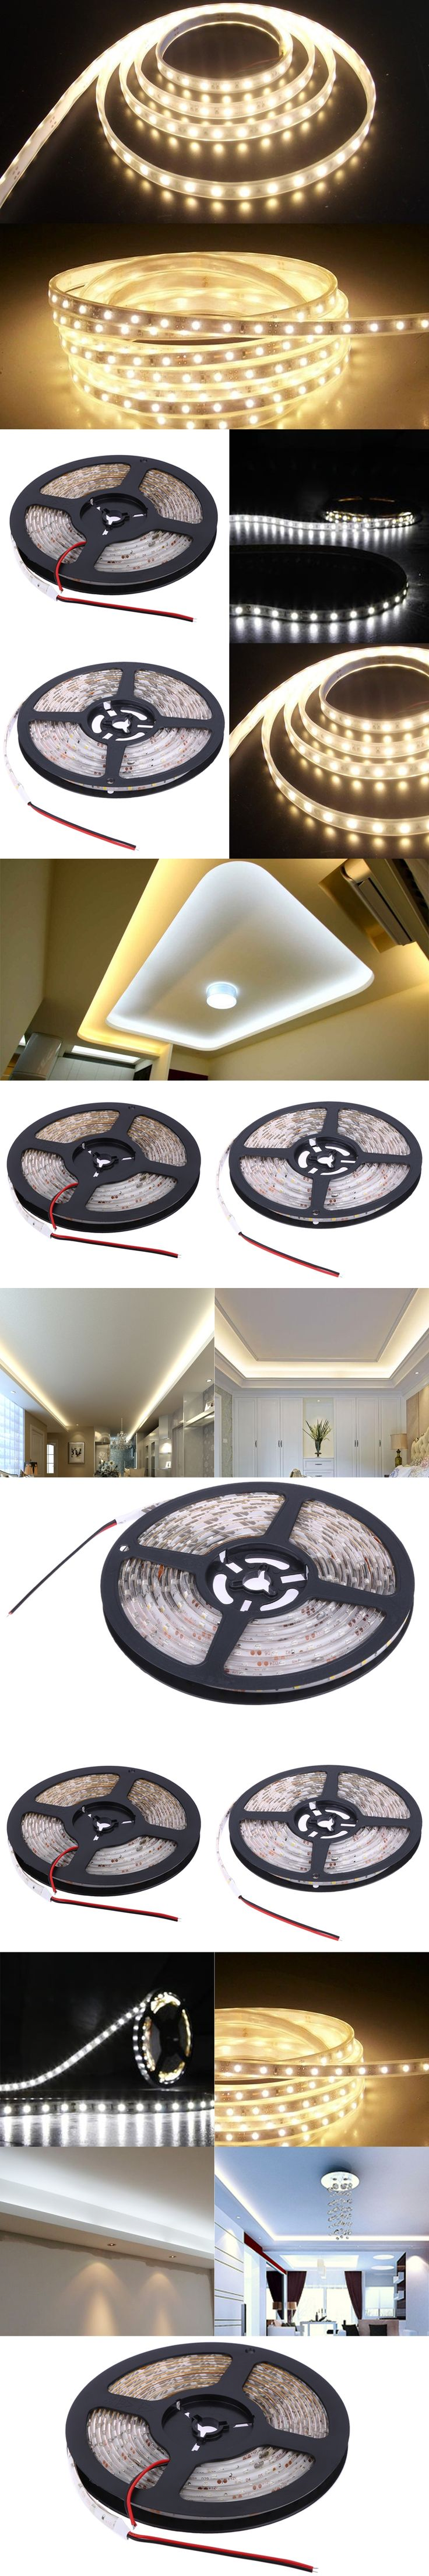 LED Strip 3528 IP65 Waterproof DC12V 60LEDs/m 5m/lot Flexible LED Light flexible Strip Light LED Tape Home Decoration Lamps